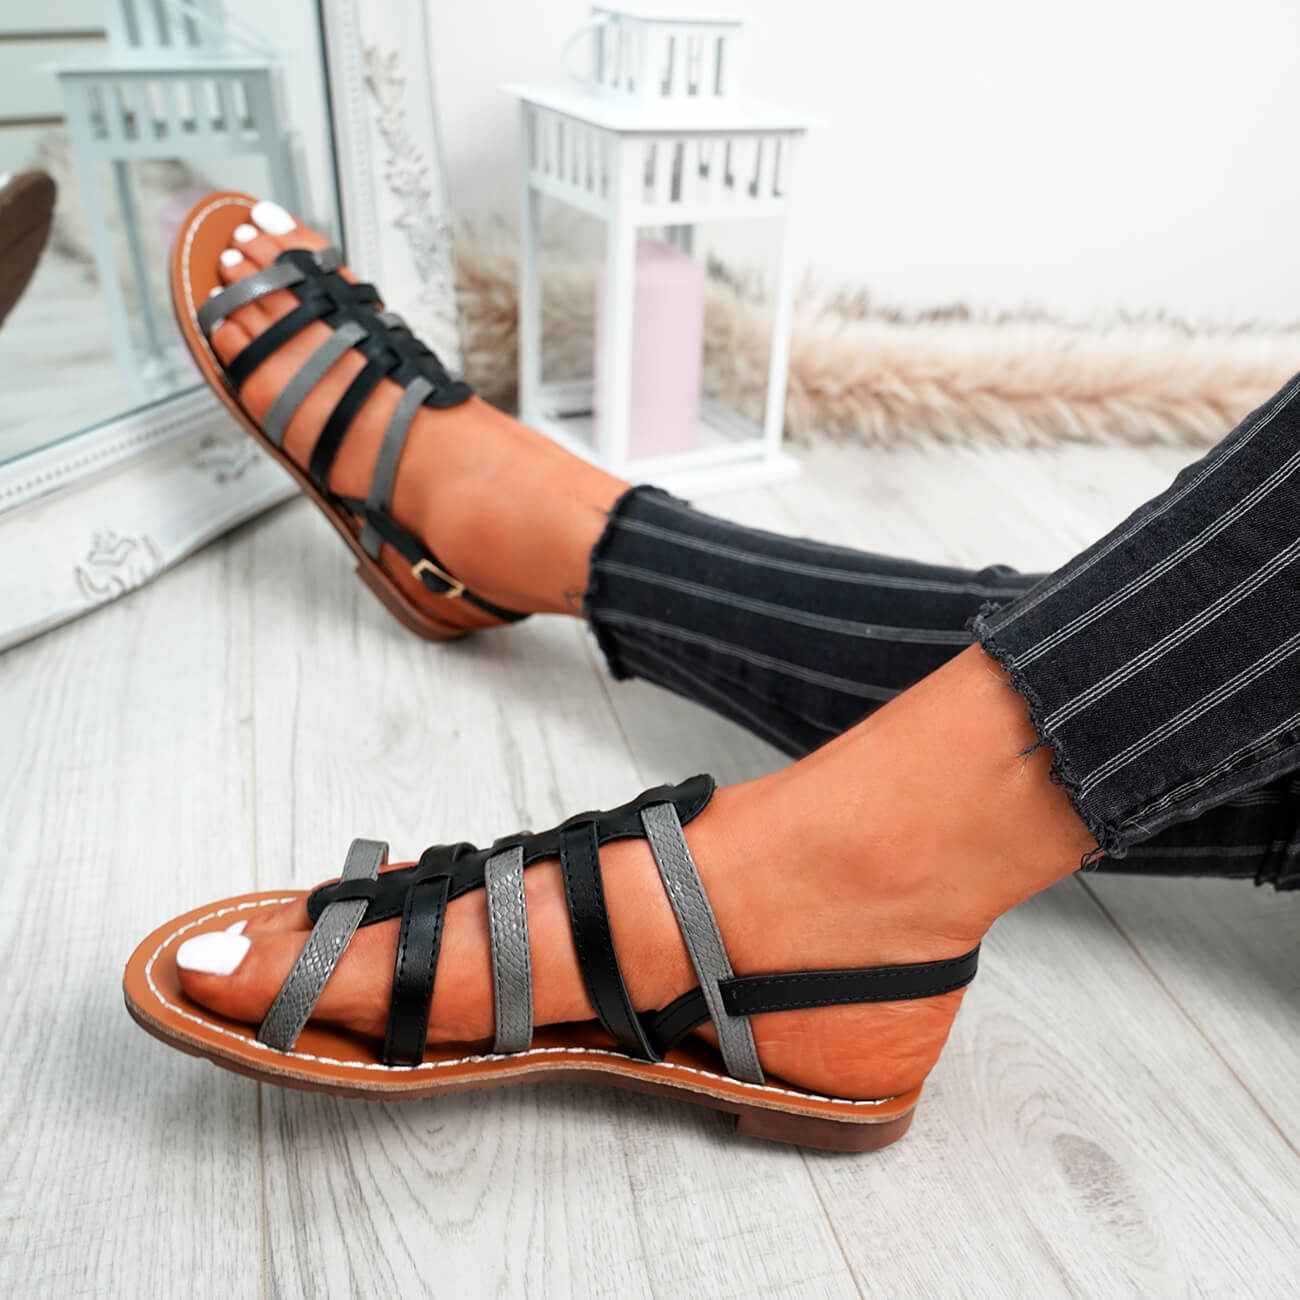 WOMENS-LADIES-BUCKLE-STRAP-FLAT-SUMMER-SANDALS-CASUAL-HOLIDAY-COMFY-SHOES-SIZE thumbnail 10